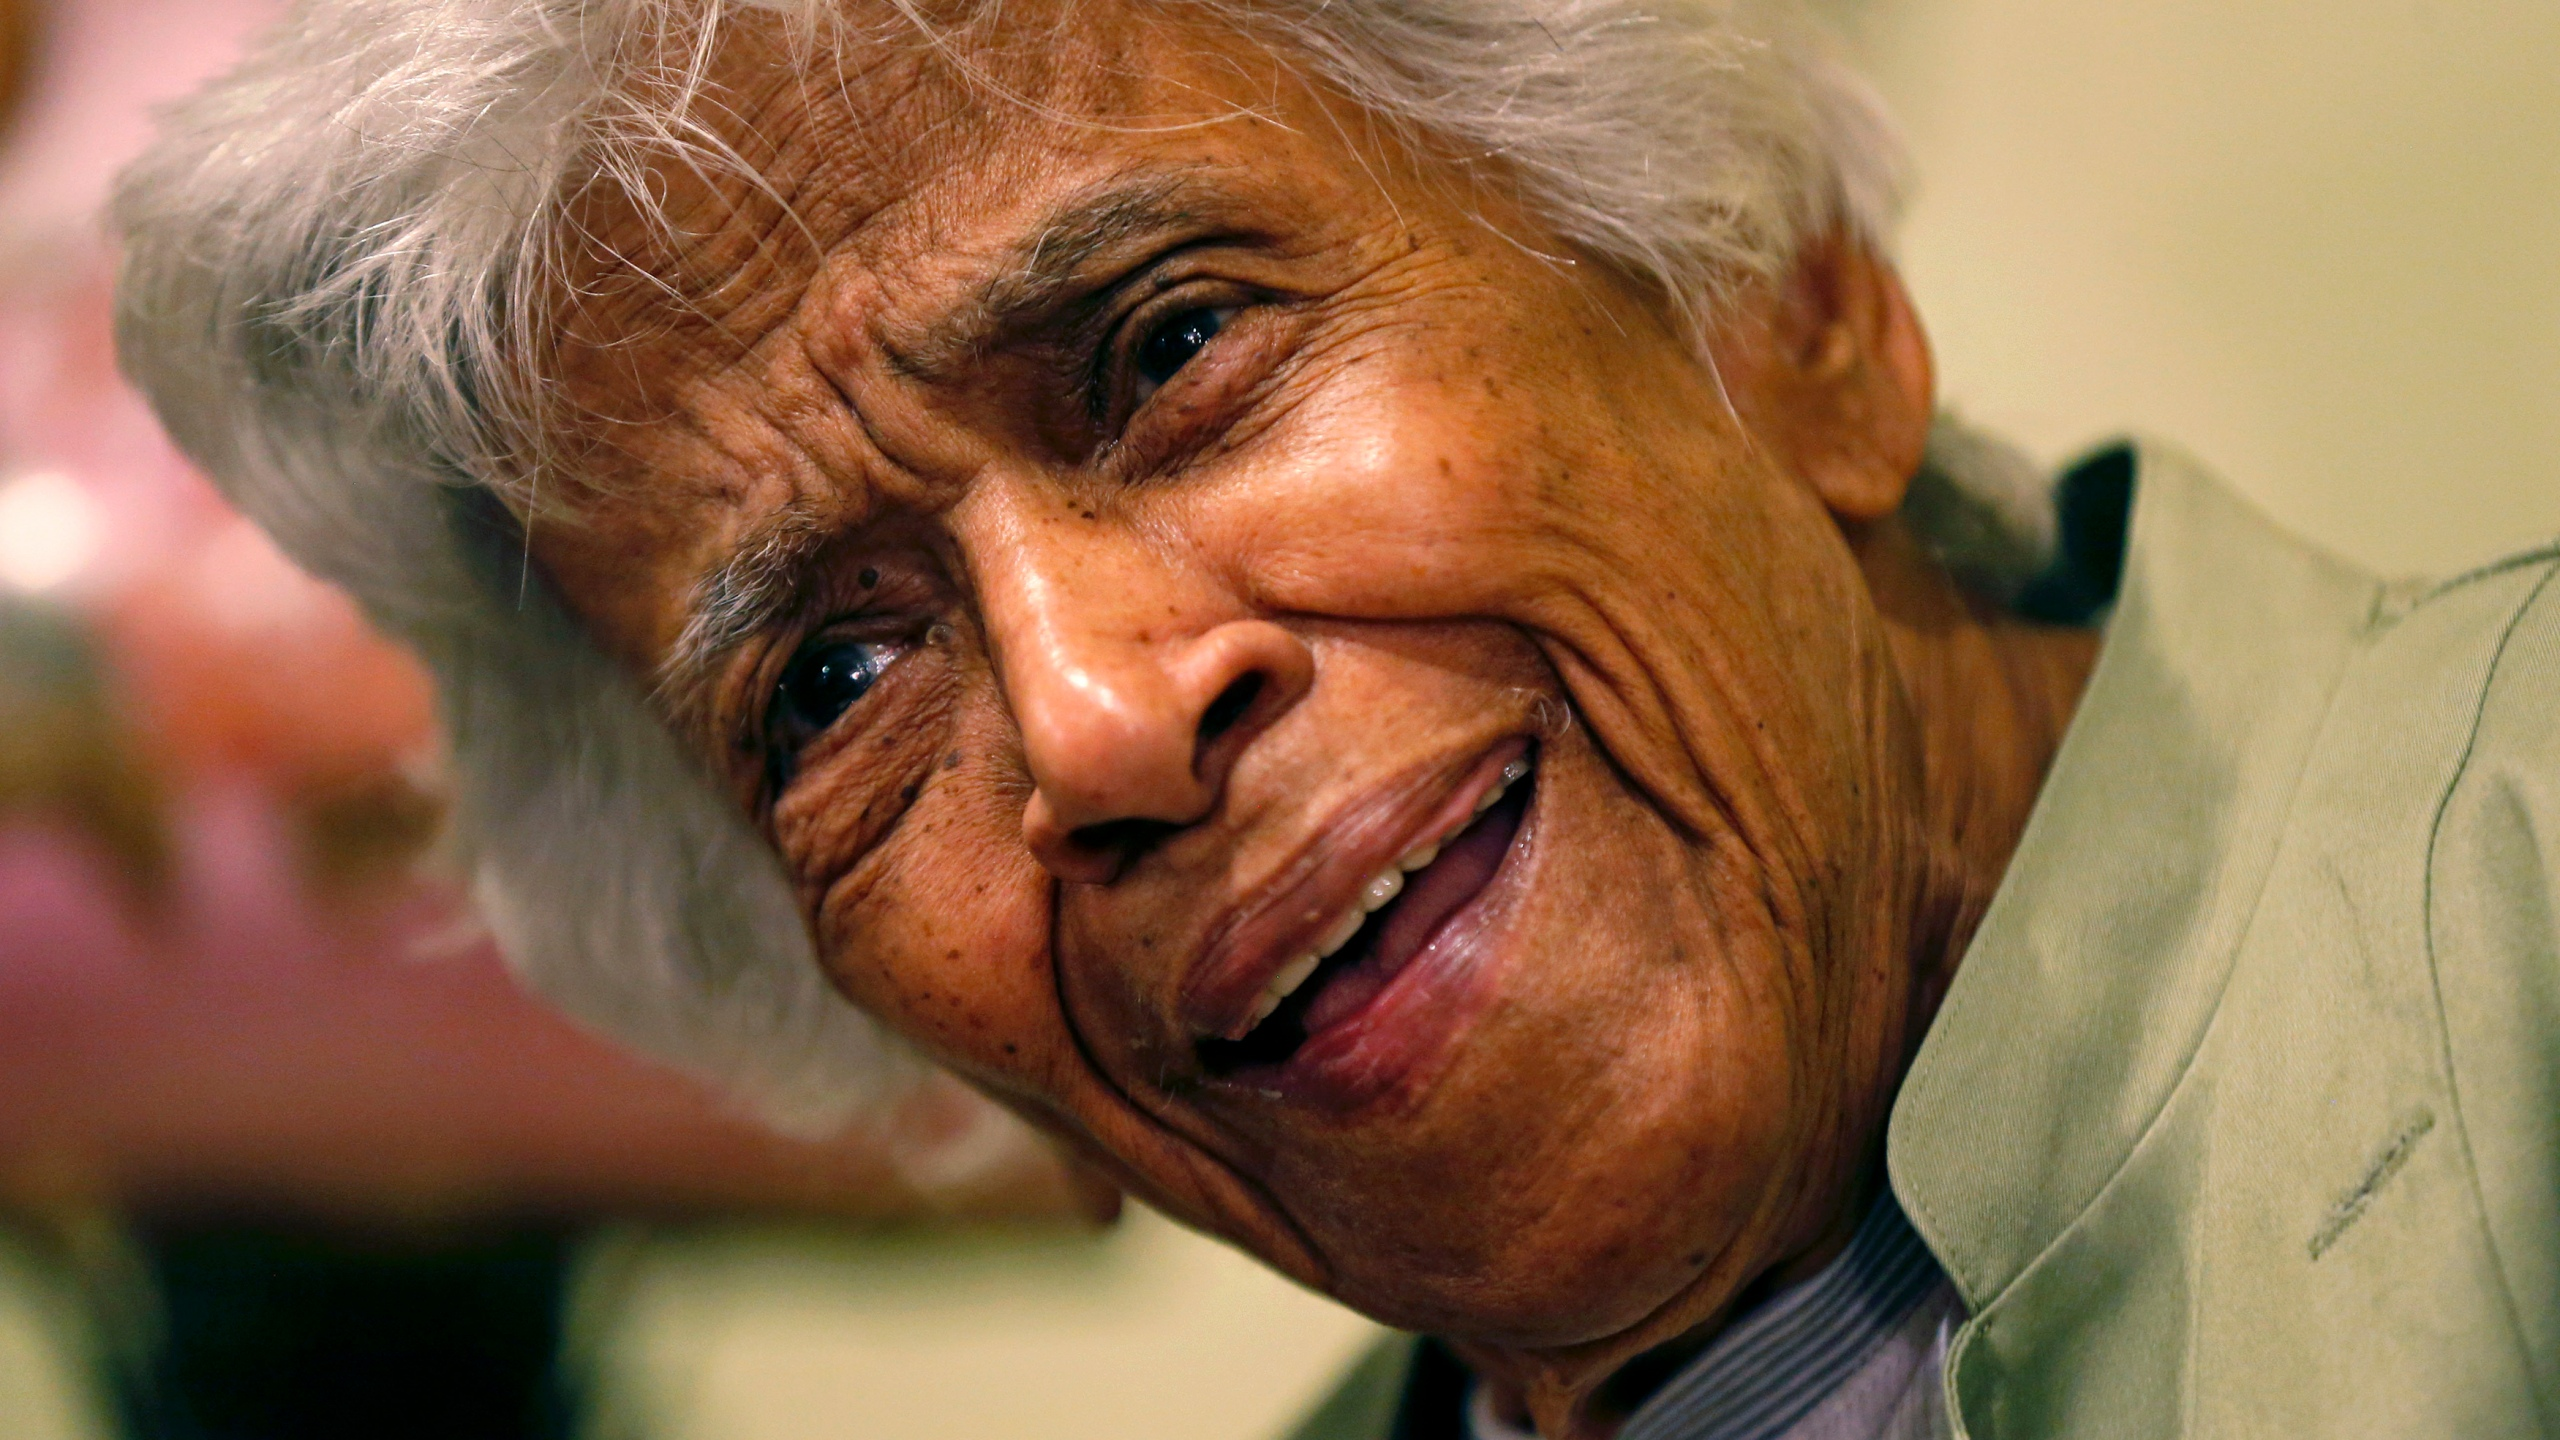 Obit_Leah_Chase_55332-159532.jpg69046421